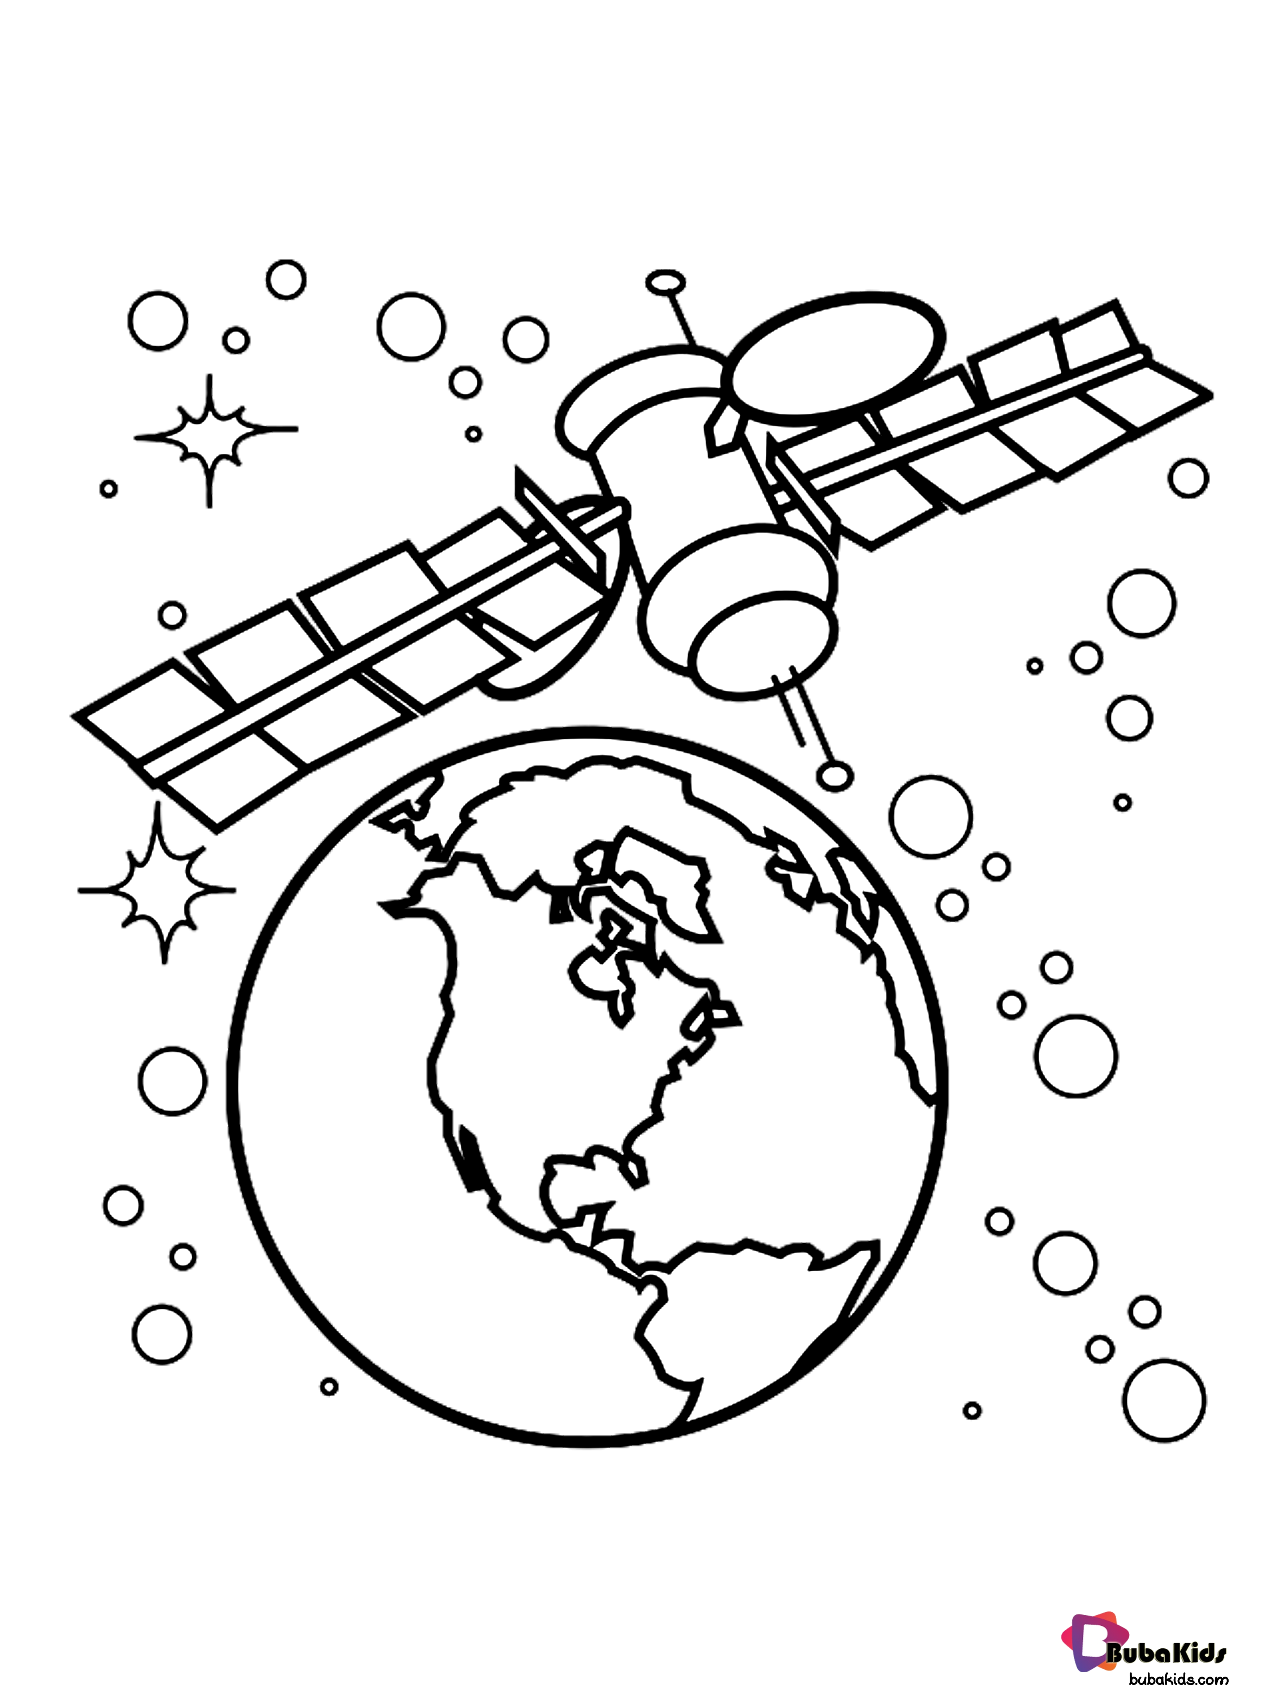 Outer Space Satellite Orbiting Earth Coloring Page Free